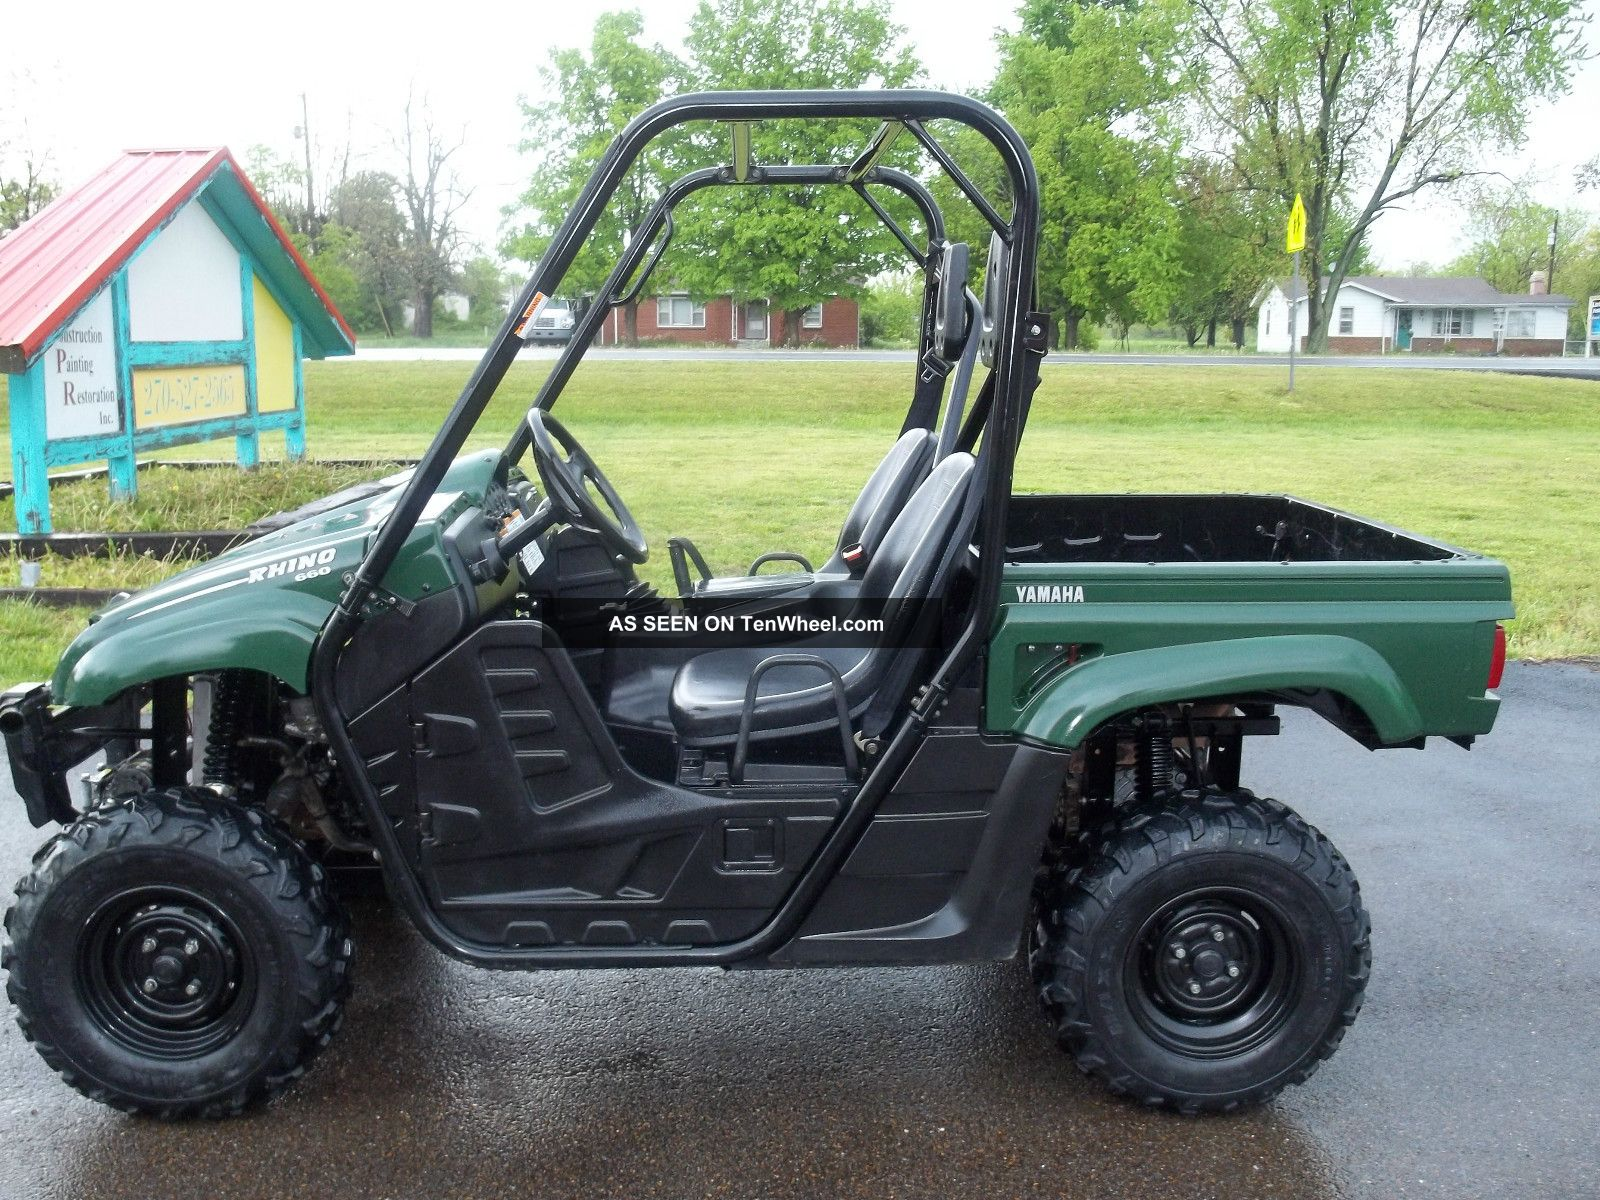 2006 rhino 660 autos post for 2006 yamaha grizzly 660 value